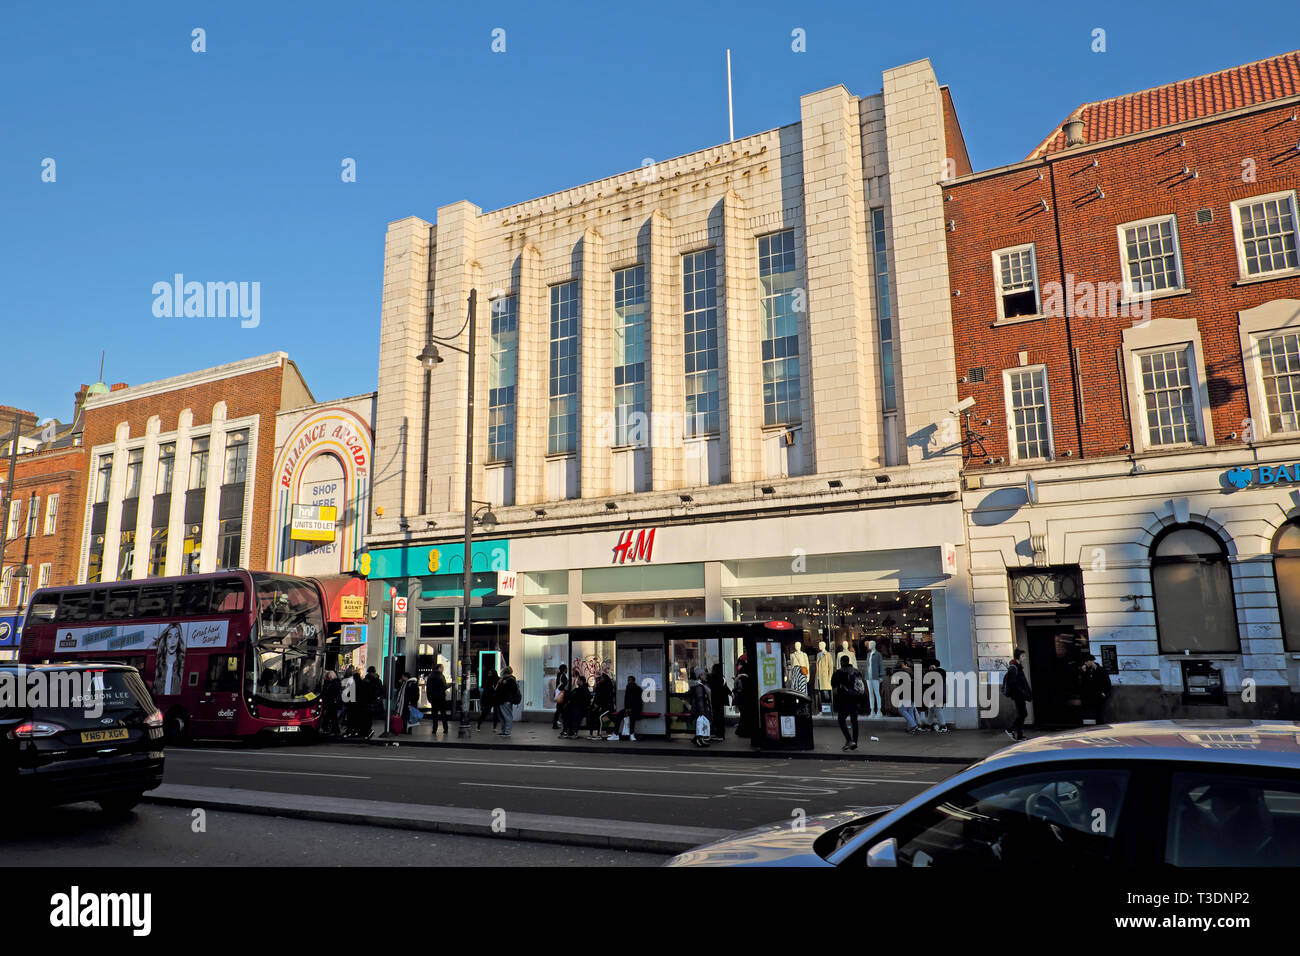 H&M store and shops on street in Brixton Hill, South London England UK Stock Photo